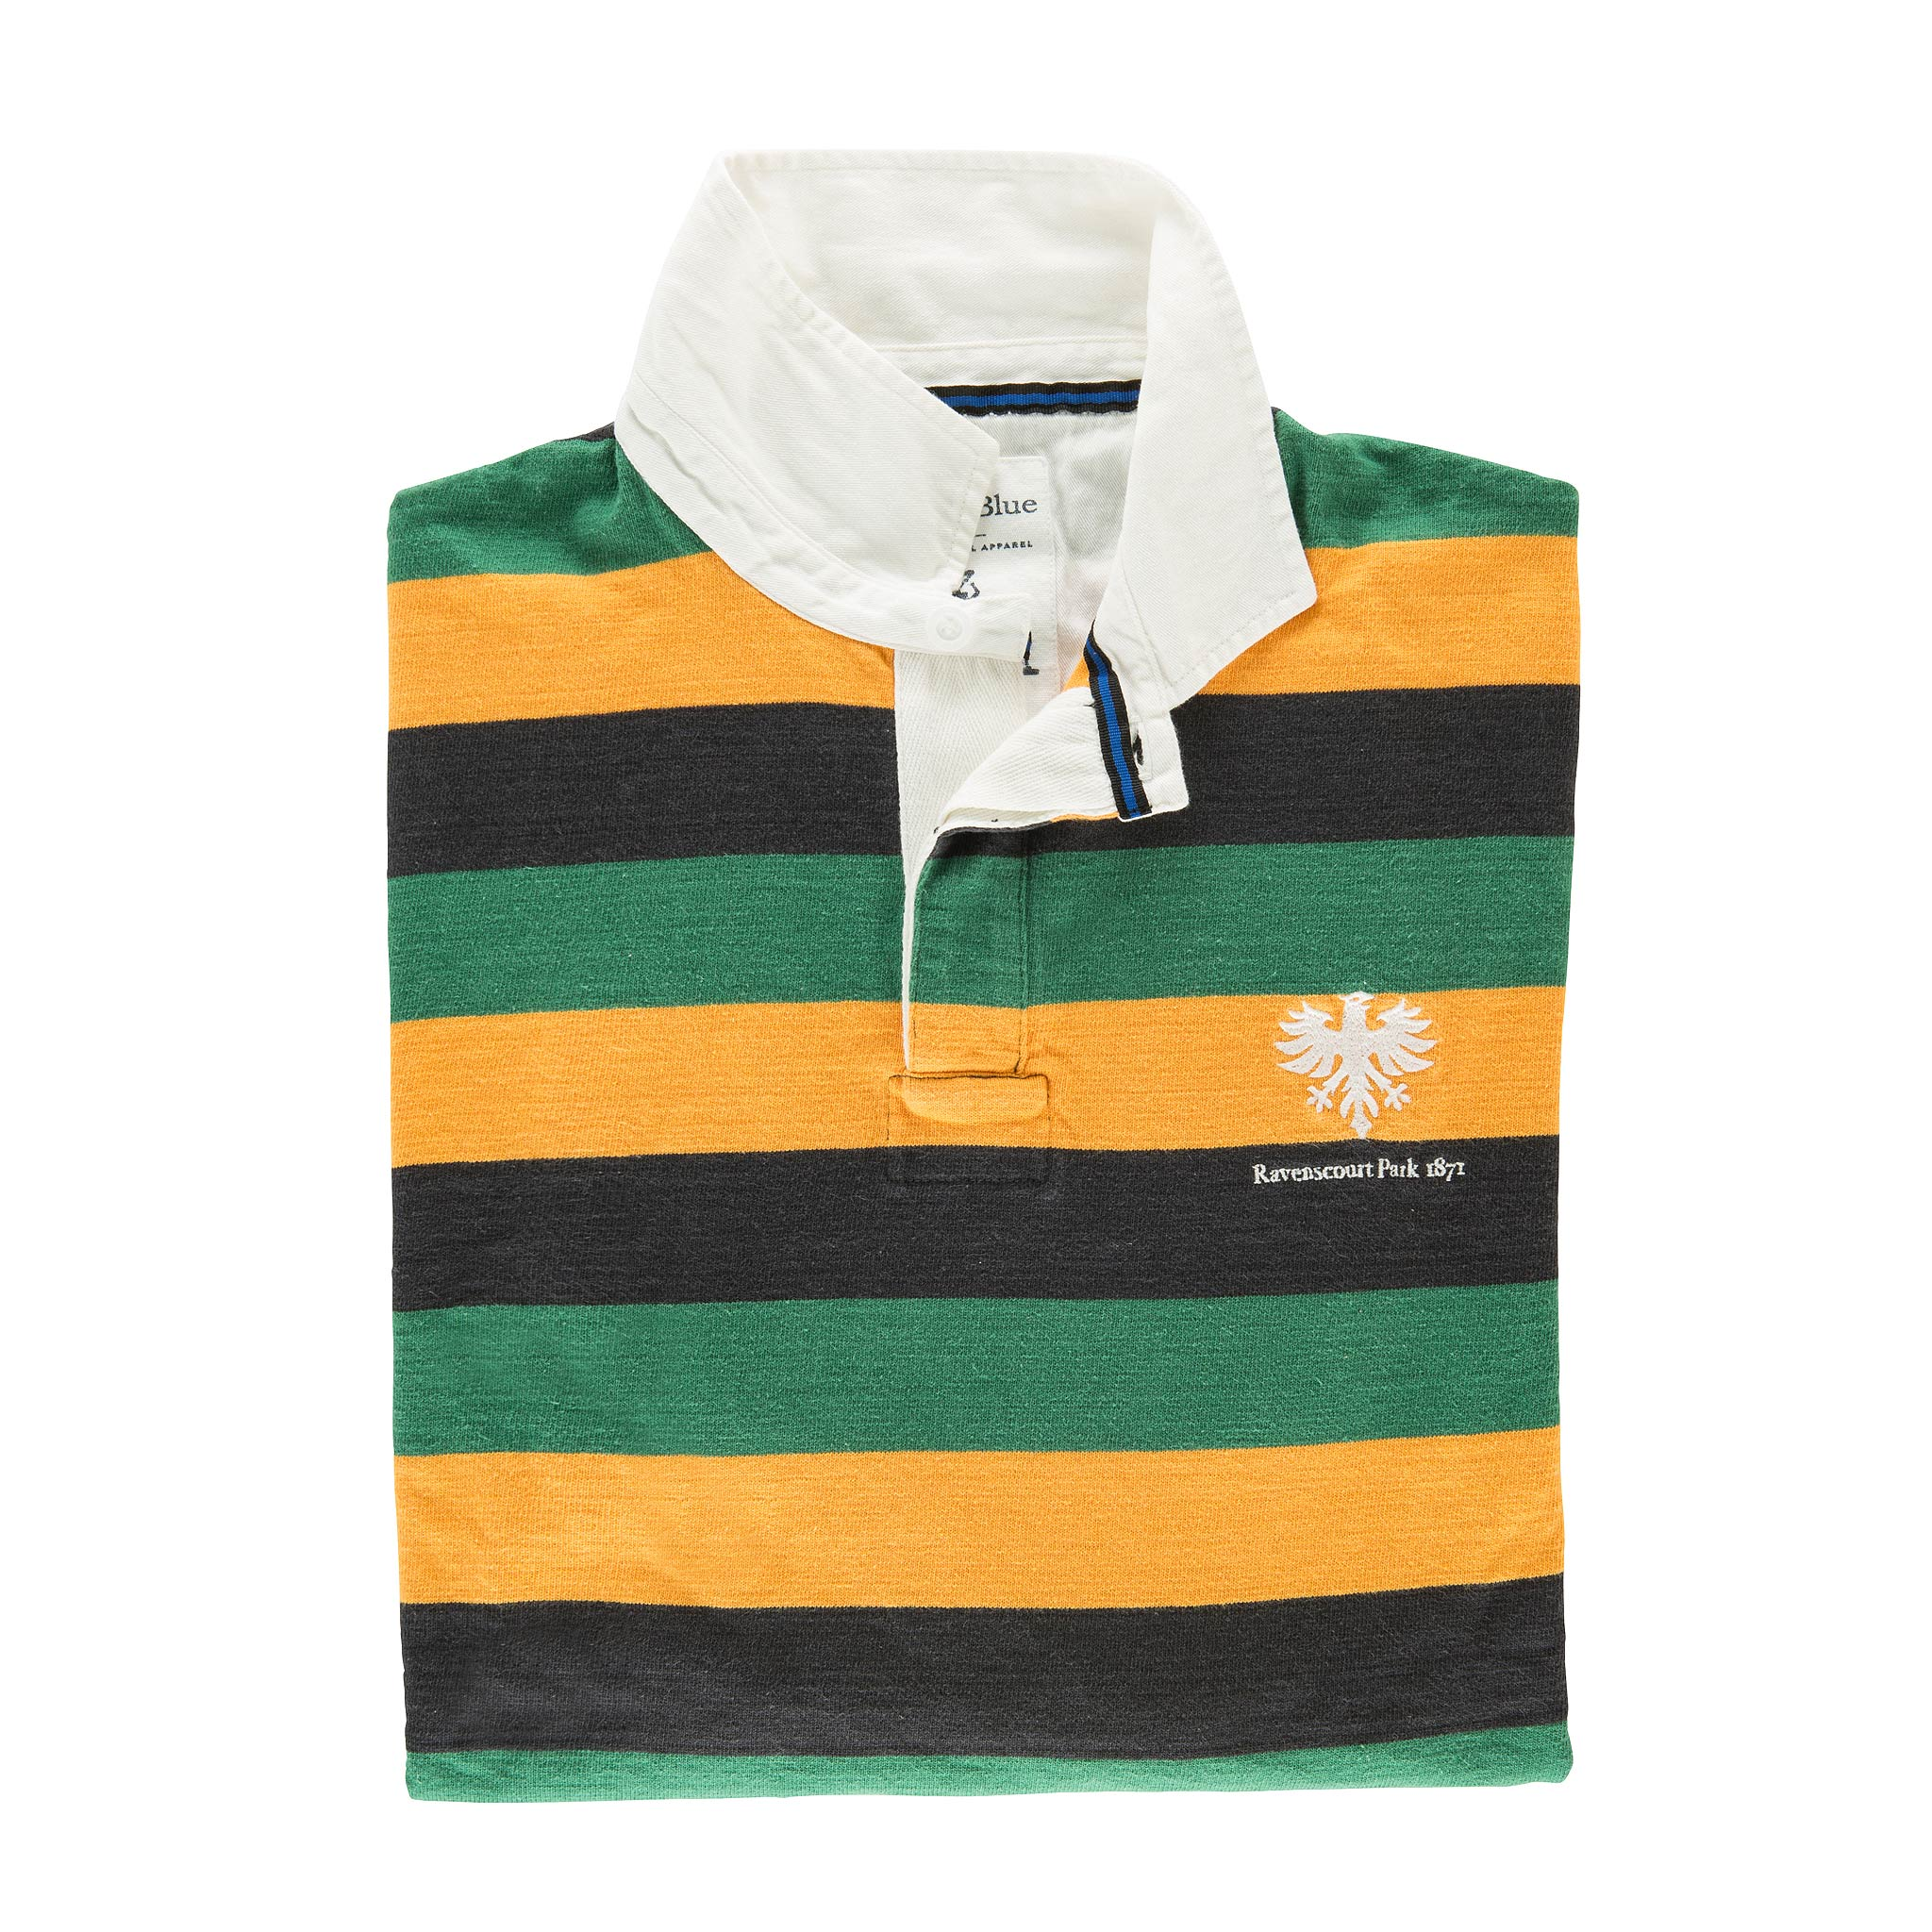 Ravenscourt Park 1871 Rugby Shirt - folded